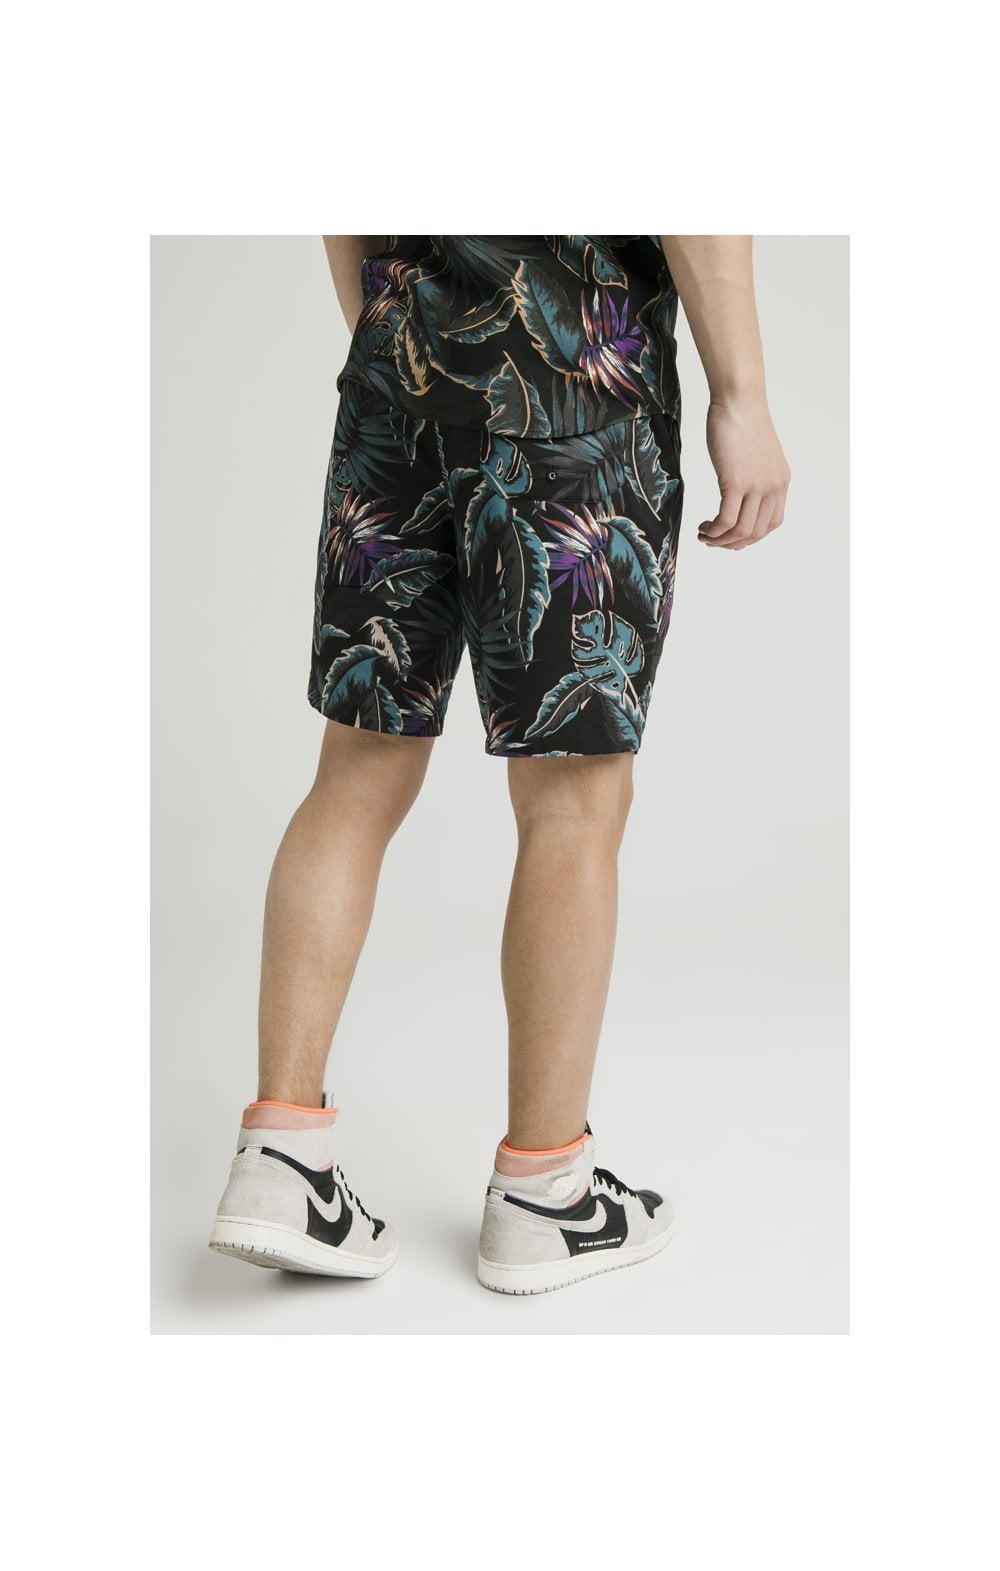 Illusive London Badeshorts - Palme (2)